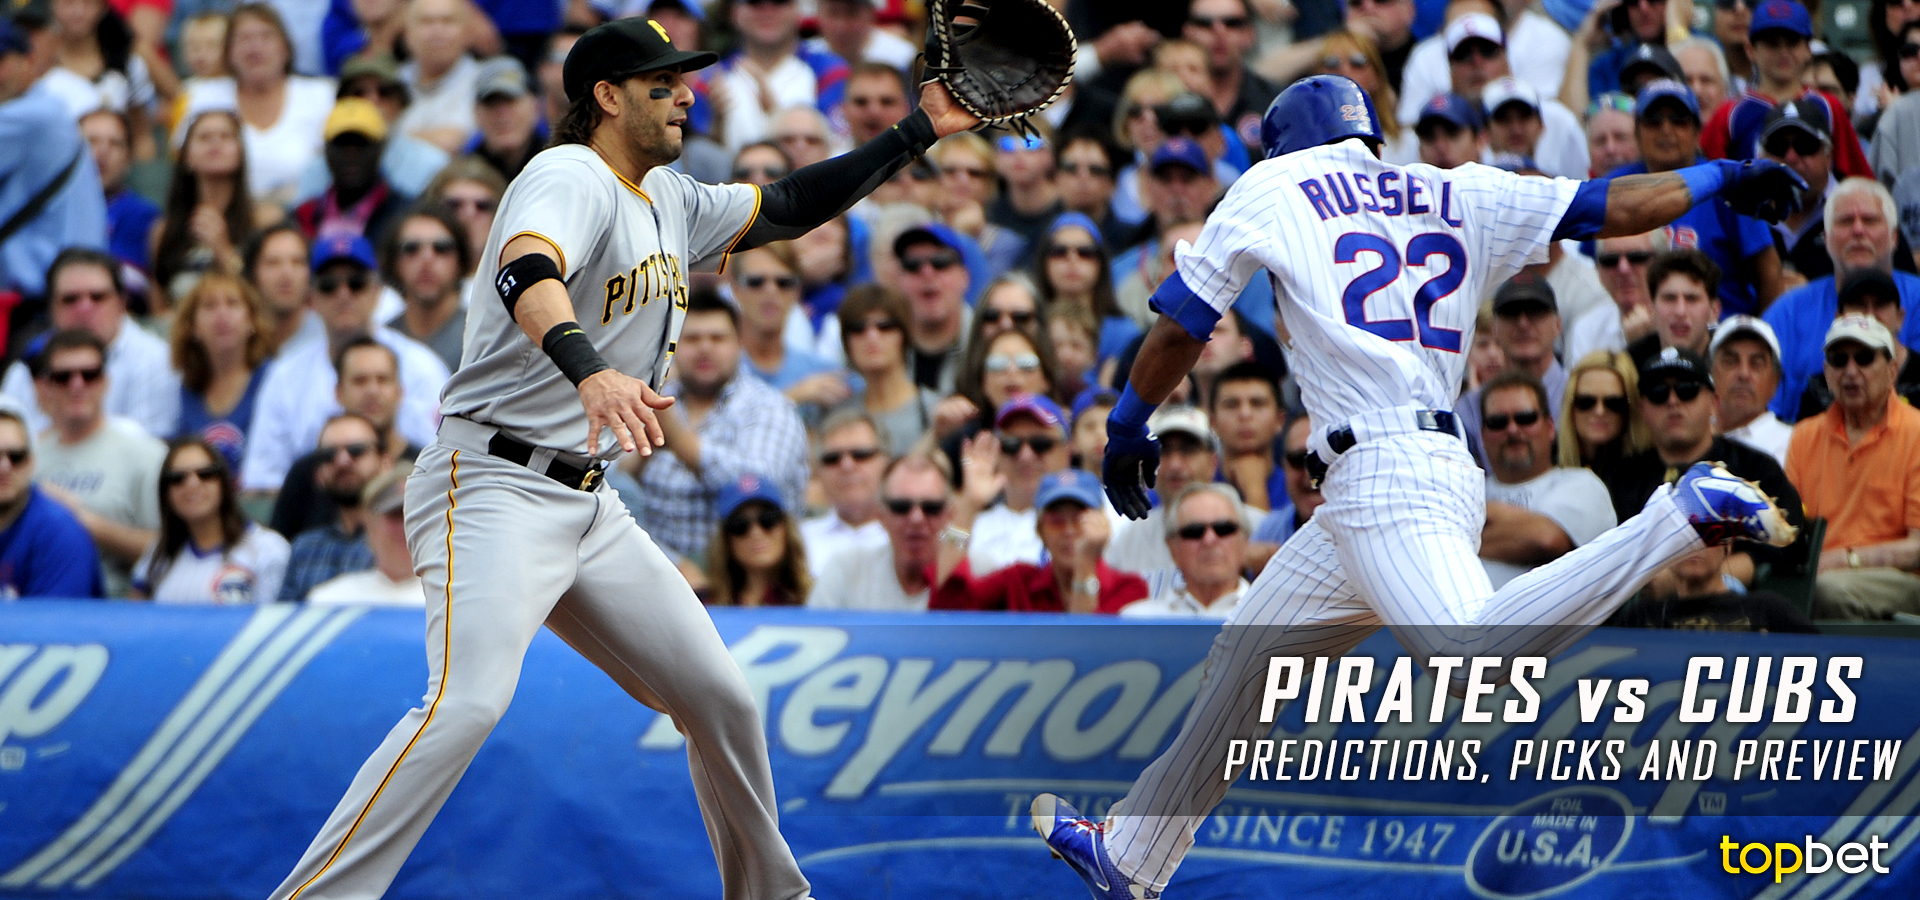 best online betting site cubs vs pirates predictions